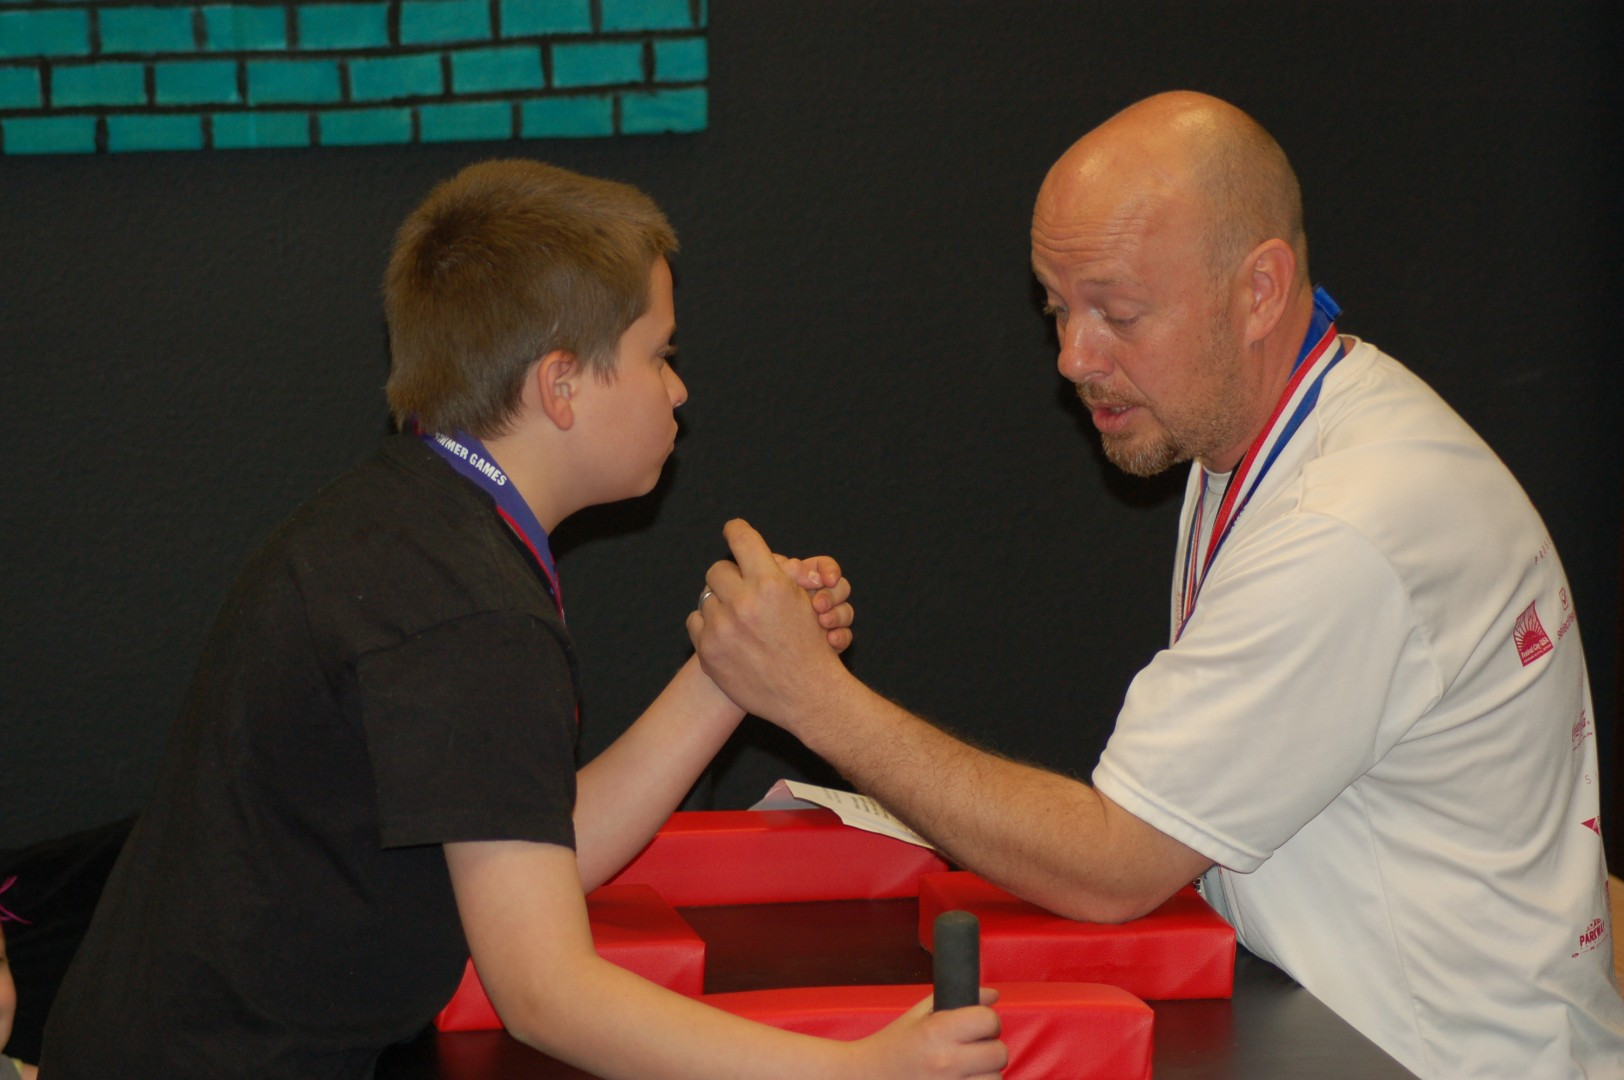 Jarett Kirby and Jeff Kirby demonstrate to the students the proper form for arm wrestling at an assembly held at Bloomington Elementary, St. George, Utah, April 4, 2014 | Photo by Hollie Reina, St. George News